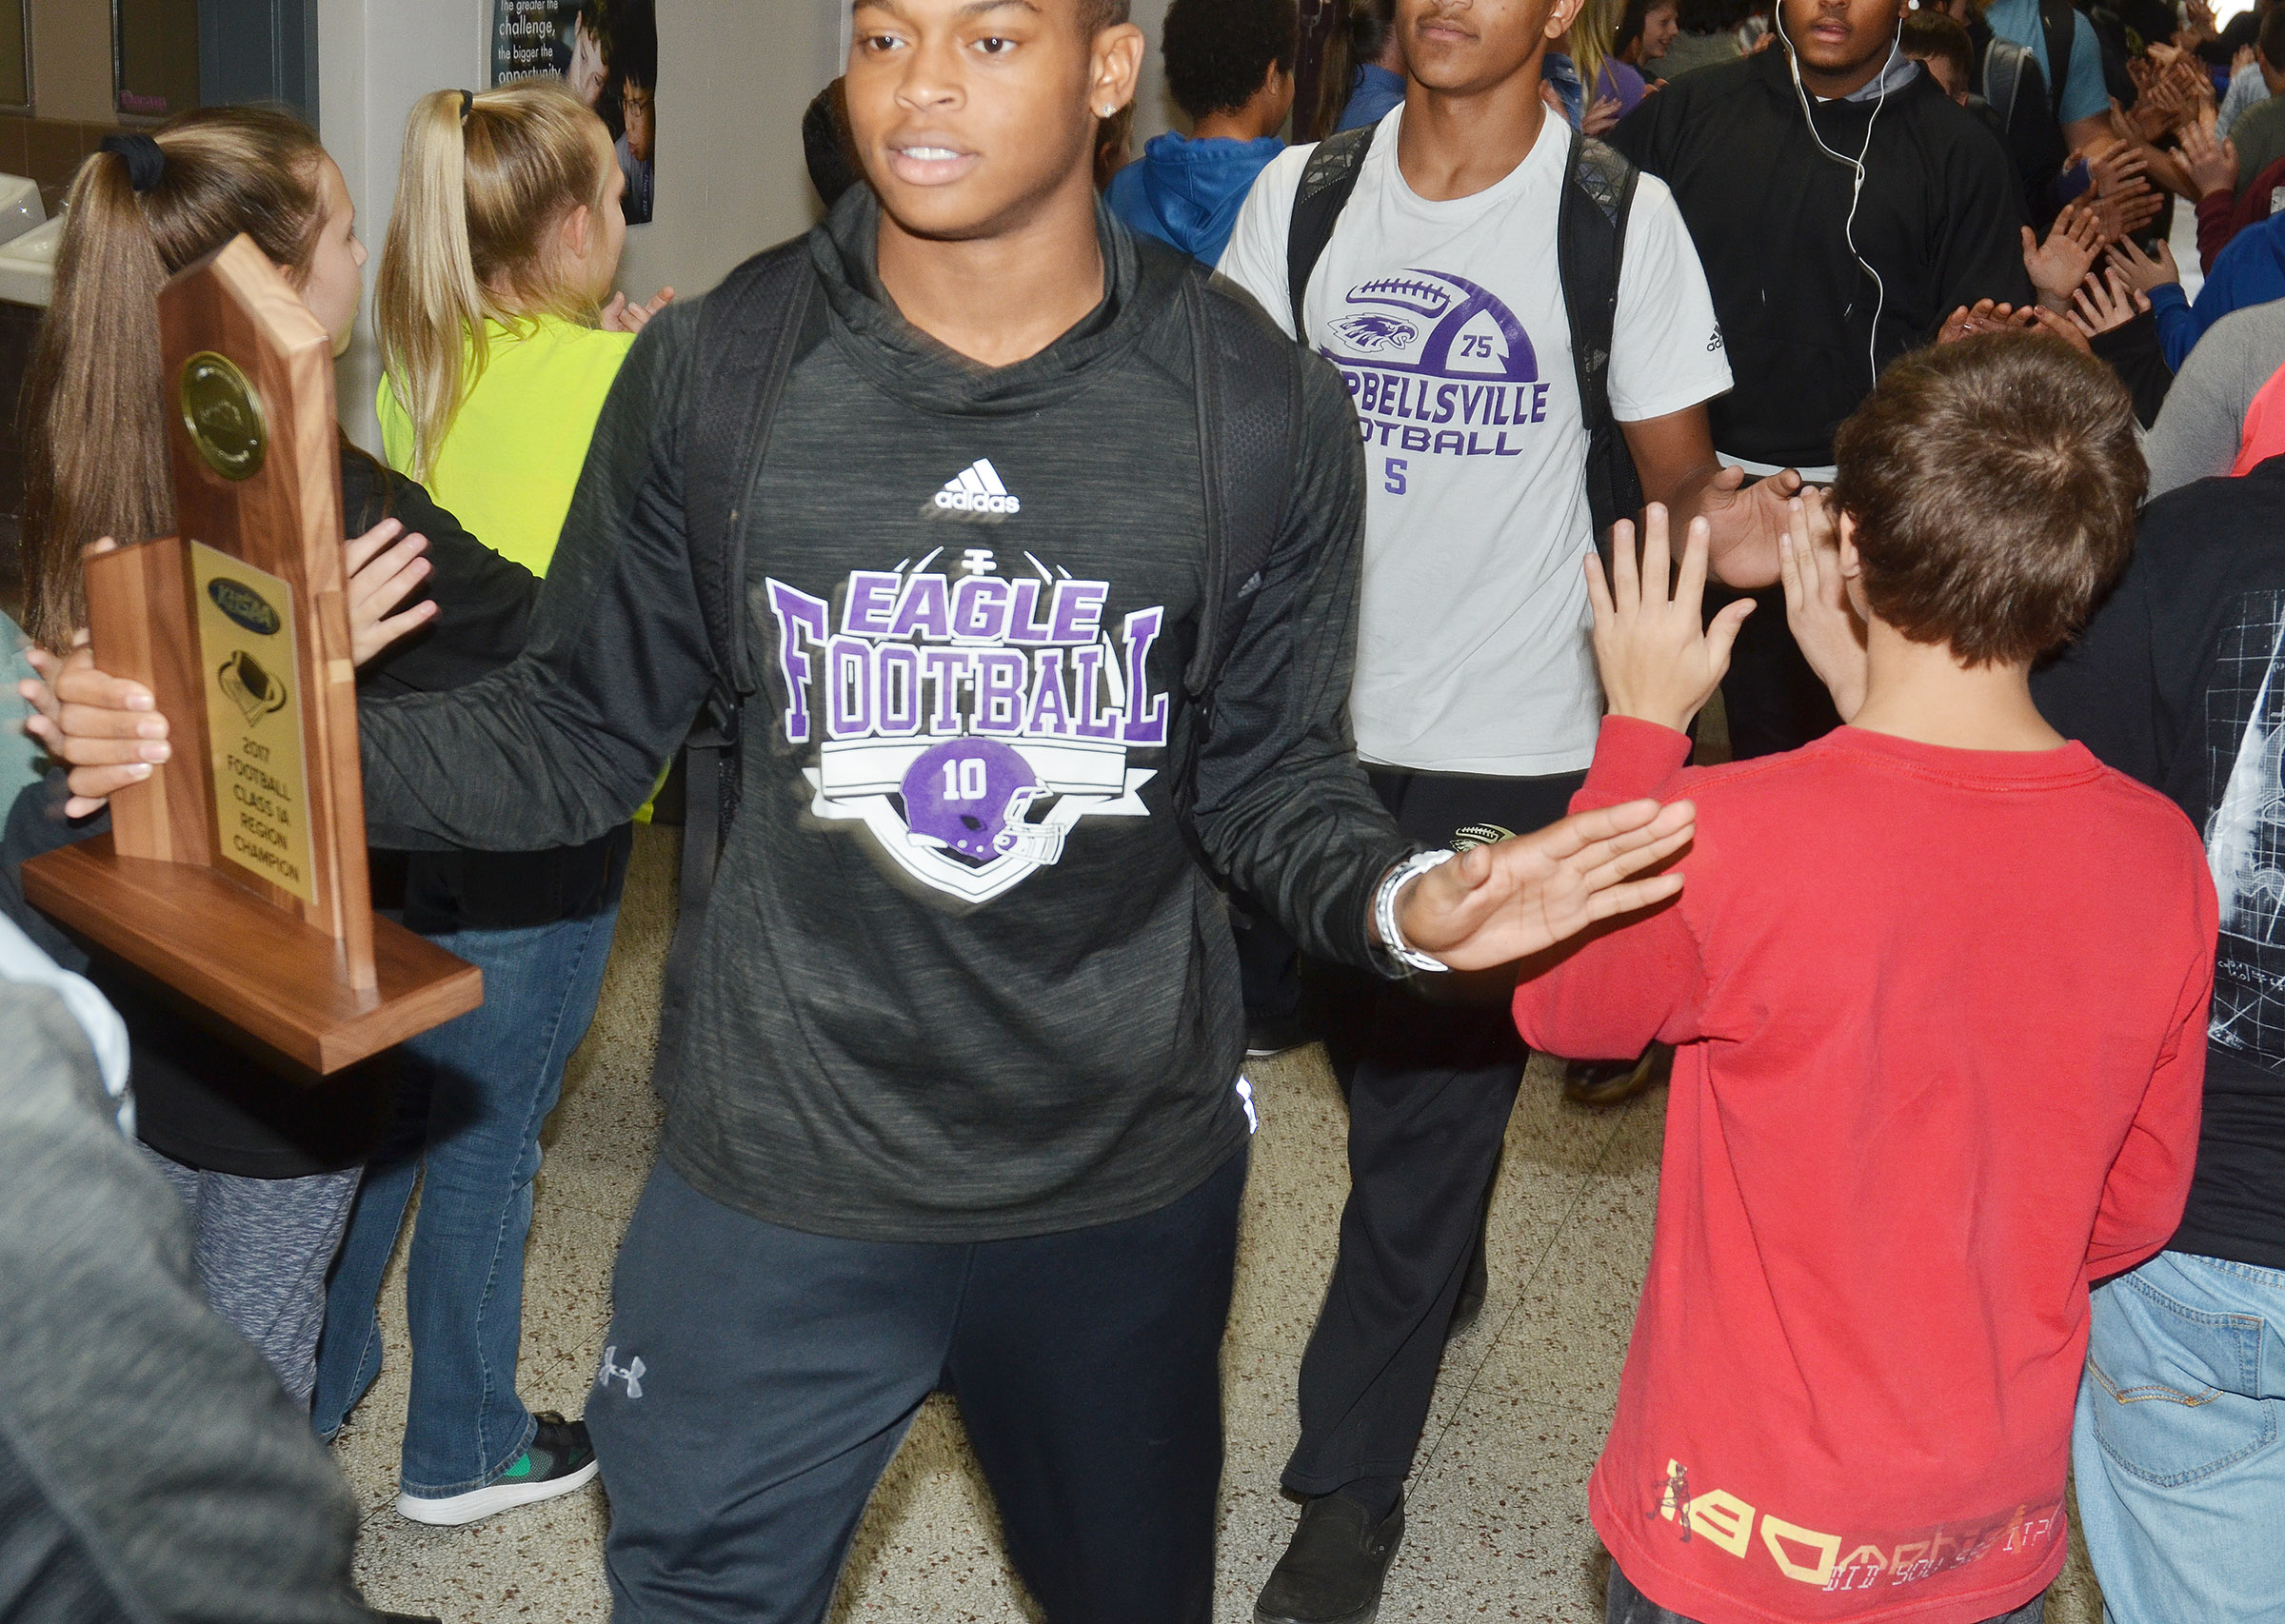 CHS senior Devonte Cubit walks with his teammates through CMS.